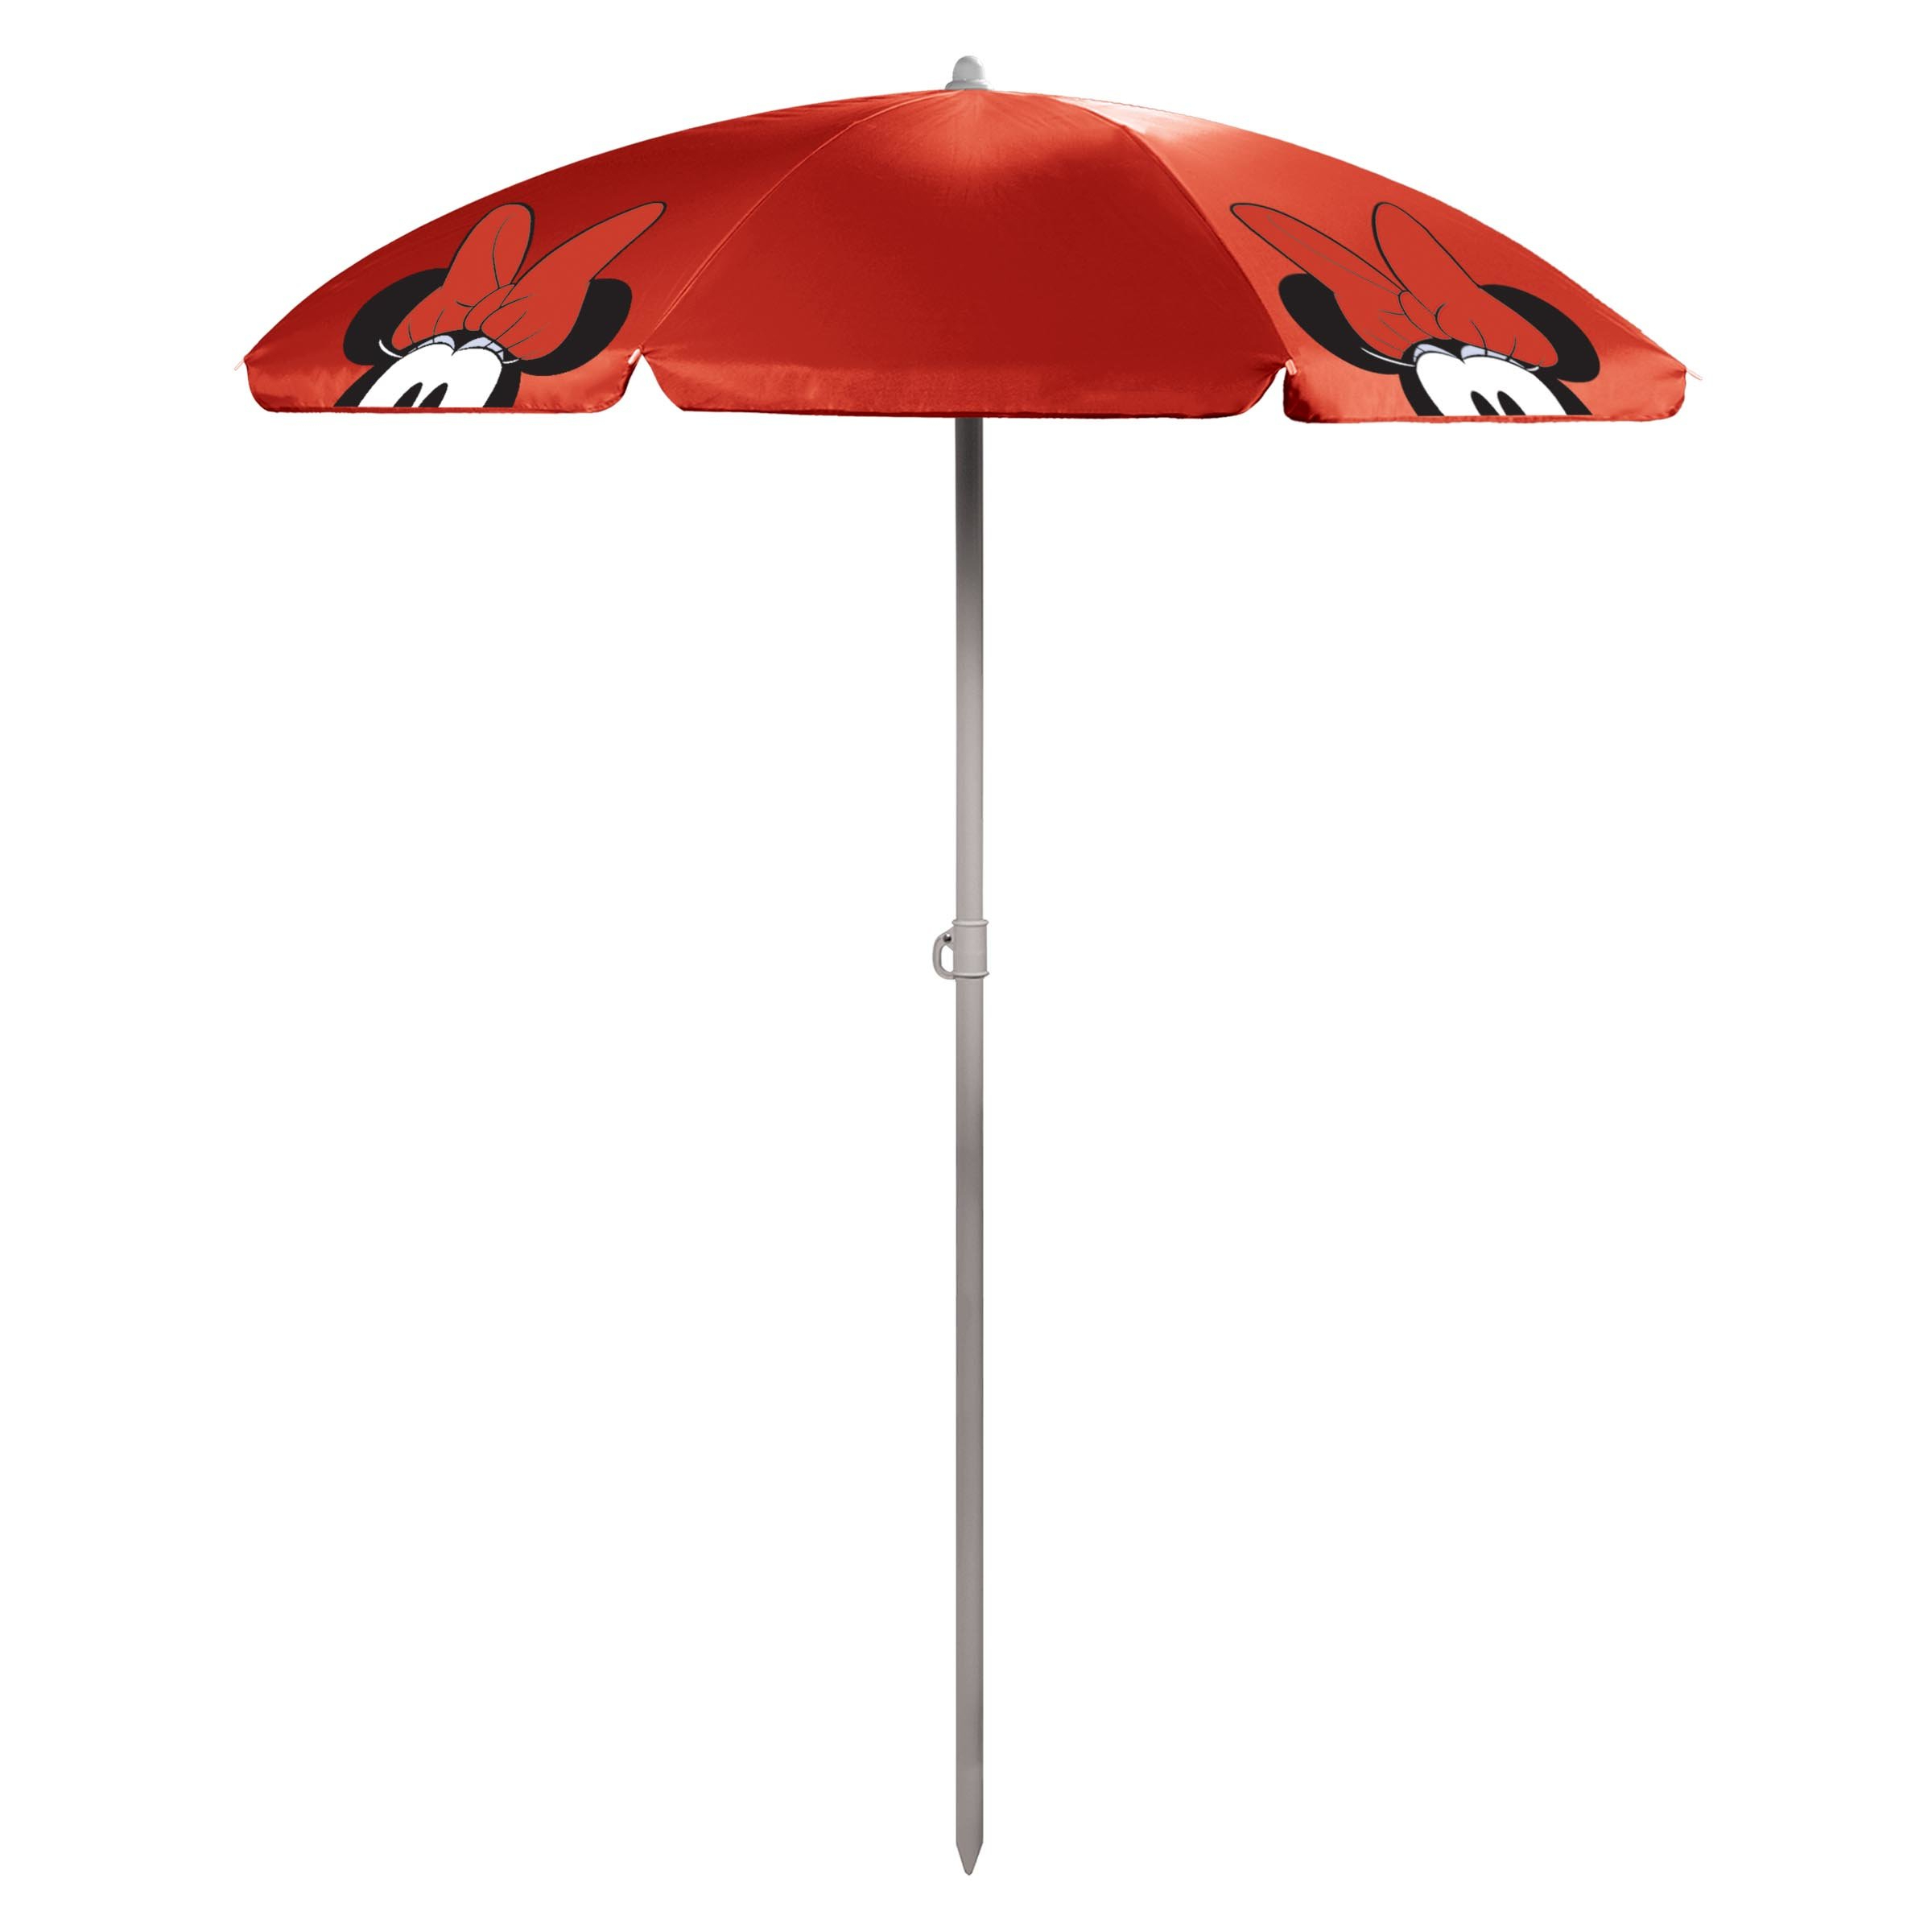 Minnie Mouse 5.5' Portable Beach Umbrella In Recent Alyson Joeshade Beach Umbrellas (Gallery 6 of 20)